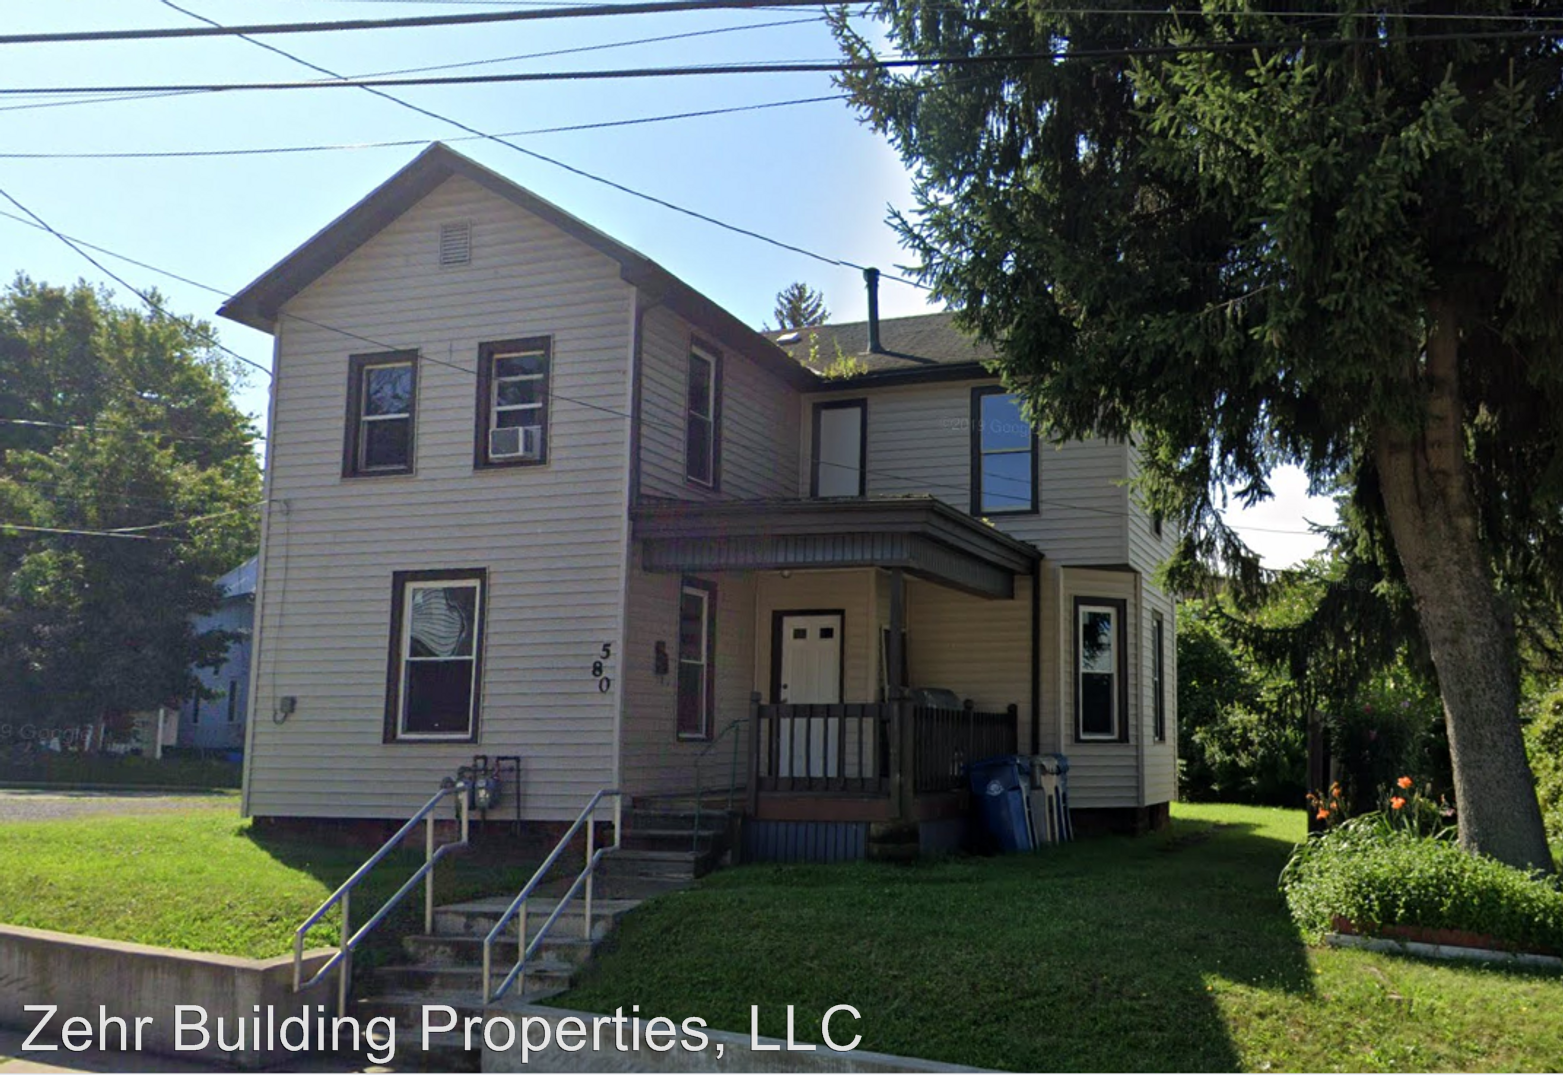 580 State Street, Meadville, PA - $725